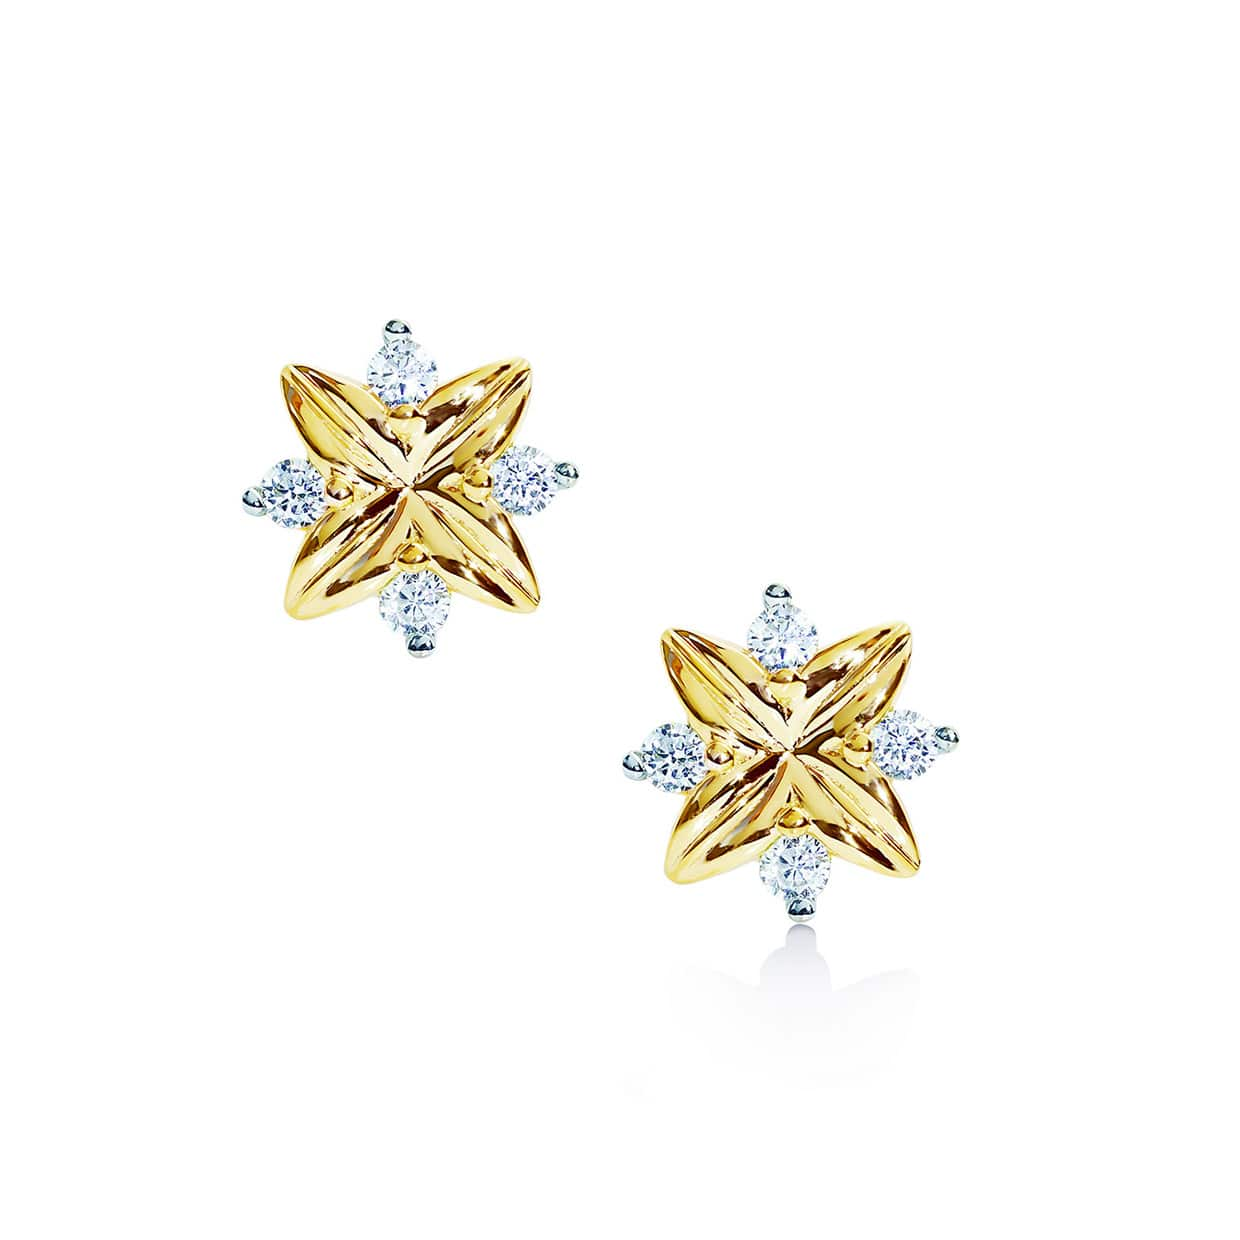 Oxford Gold Petite Star Earrings - Abelstedt